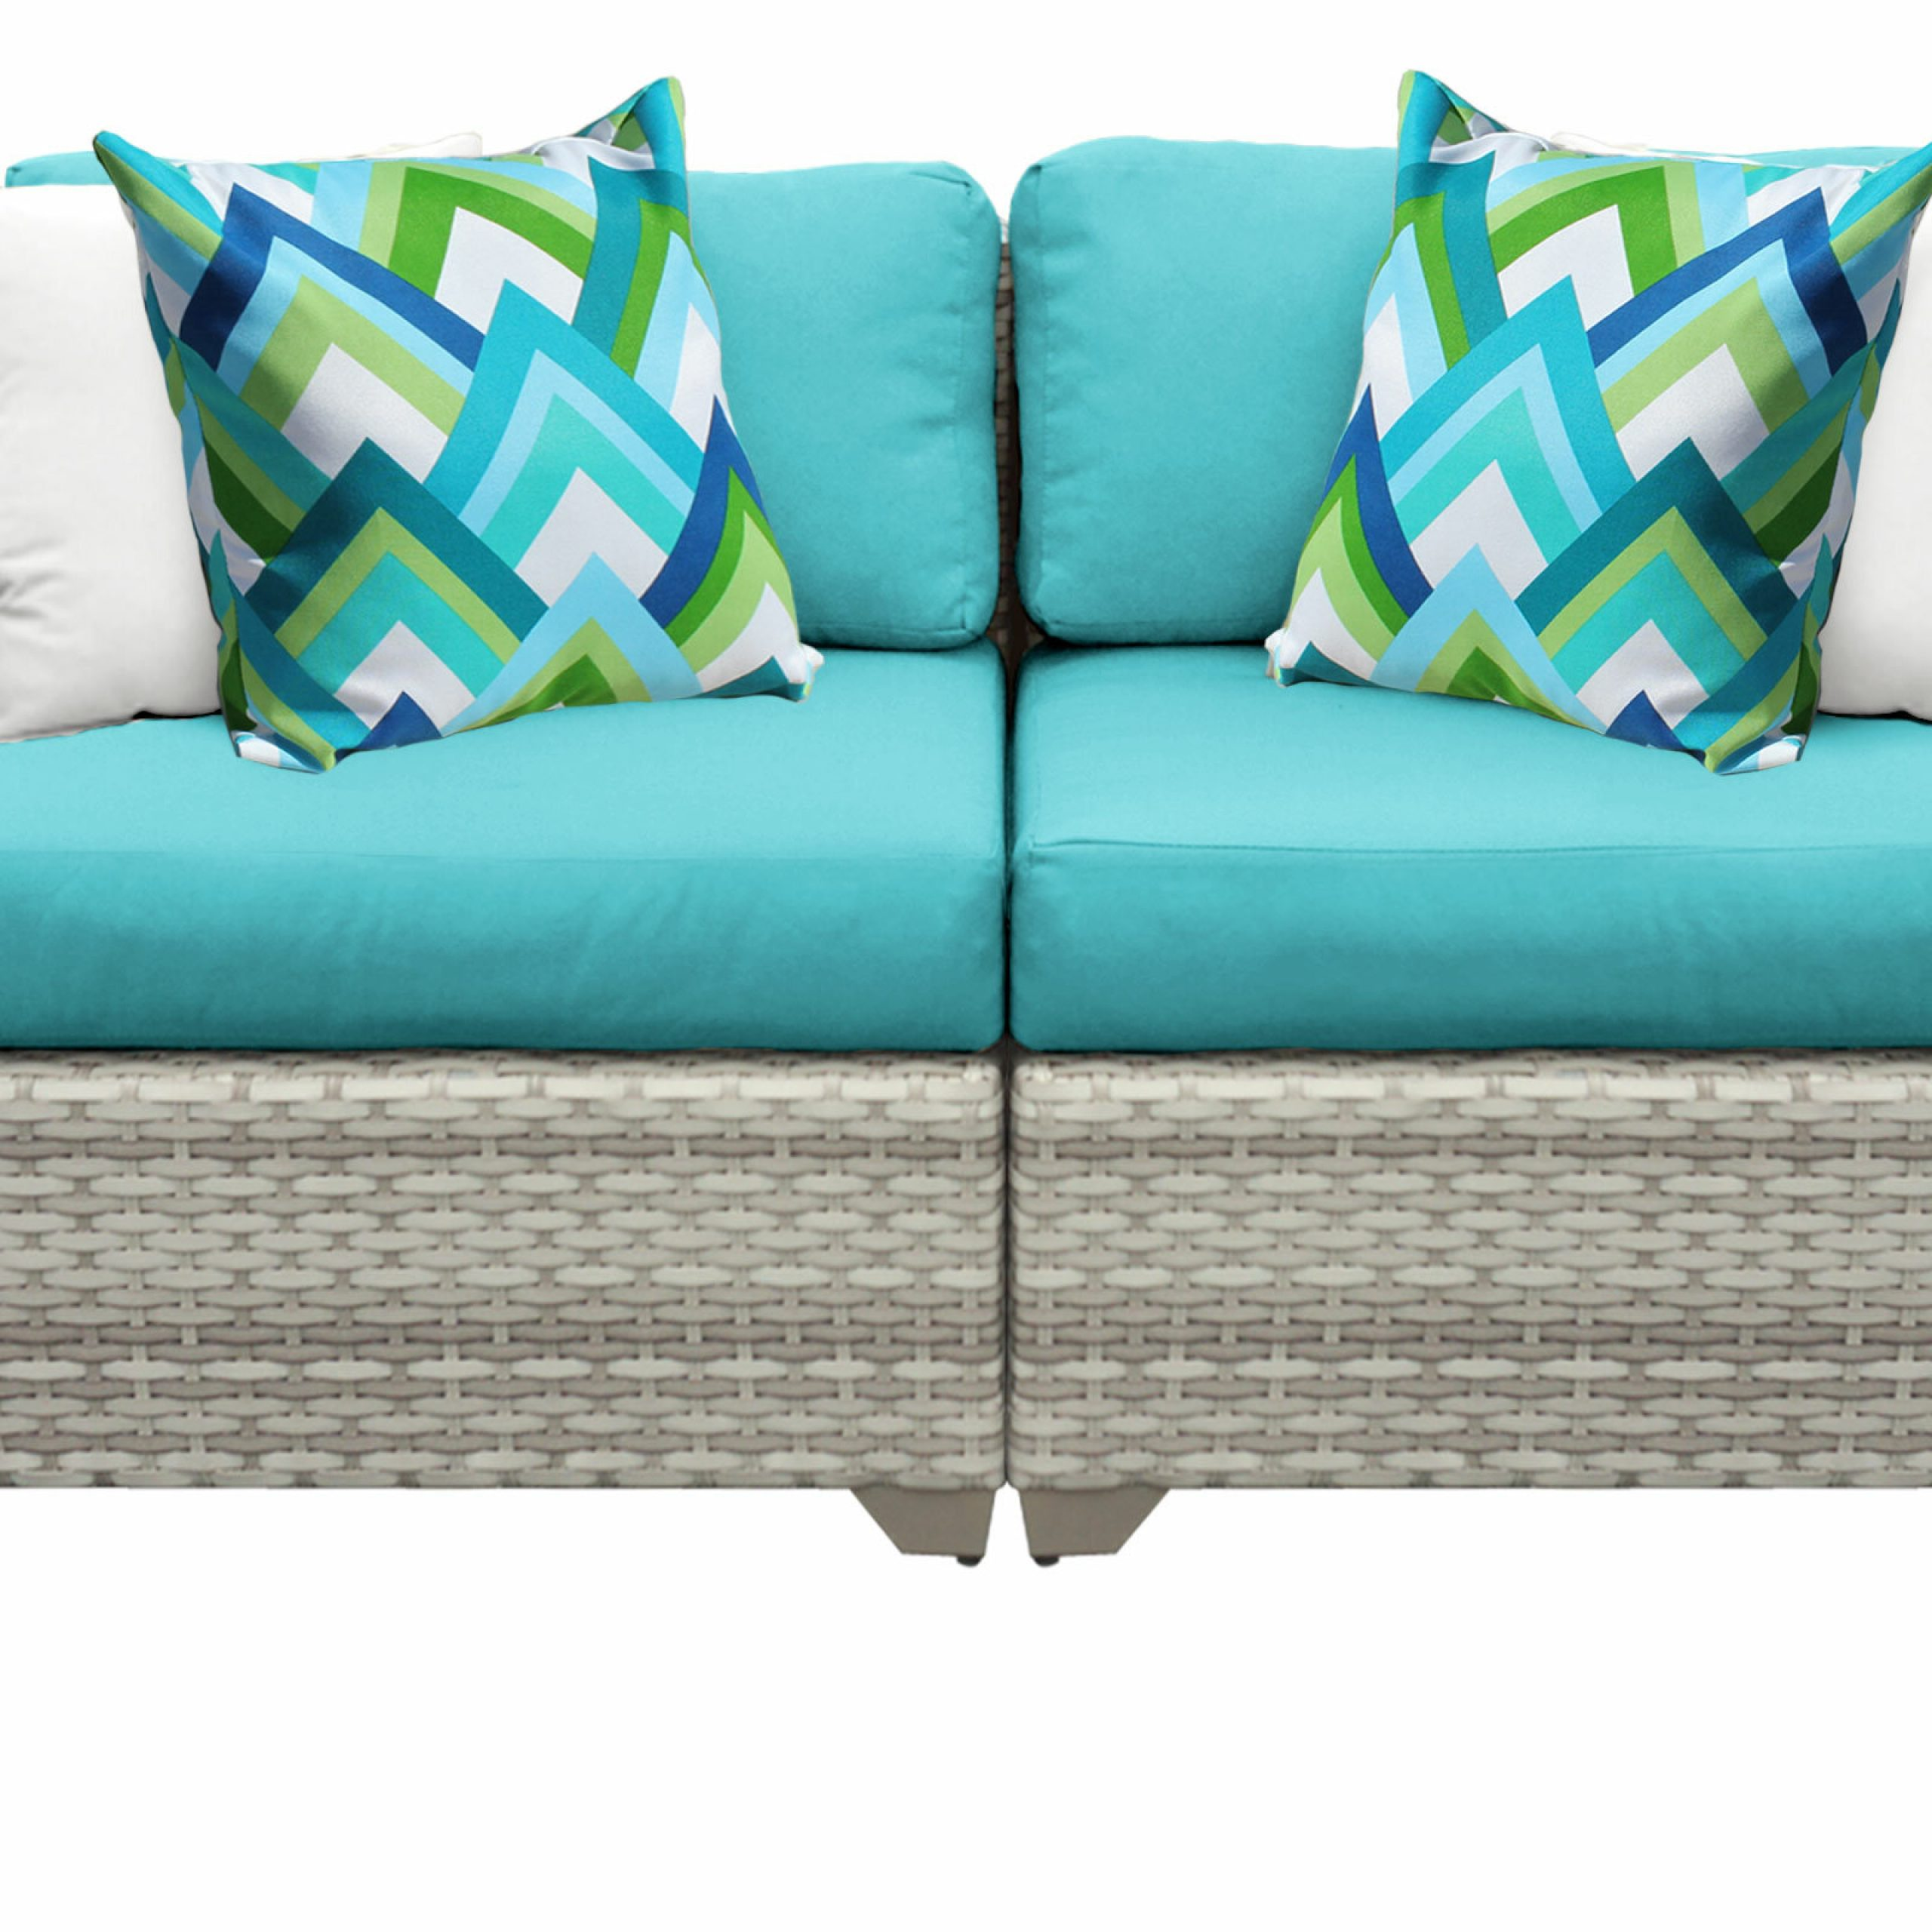 Falmouth Loveseat With Cushions Within Most Recently Released Lawson Wicker Loveseats With Cushions (View 19 of 25)